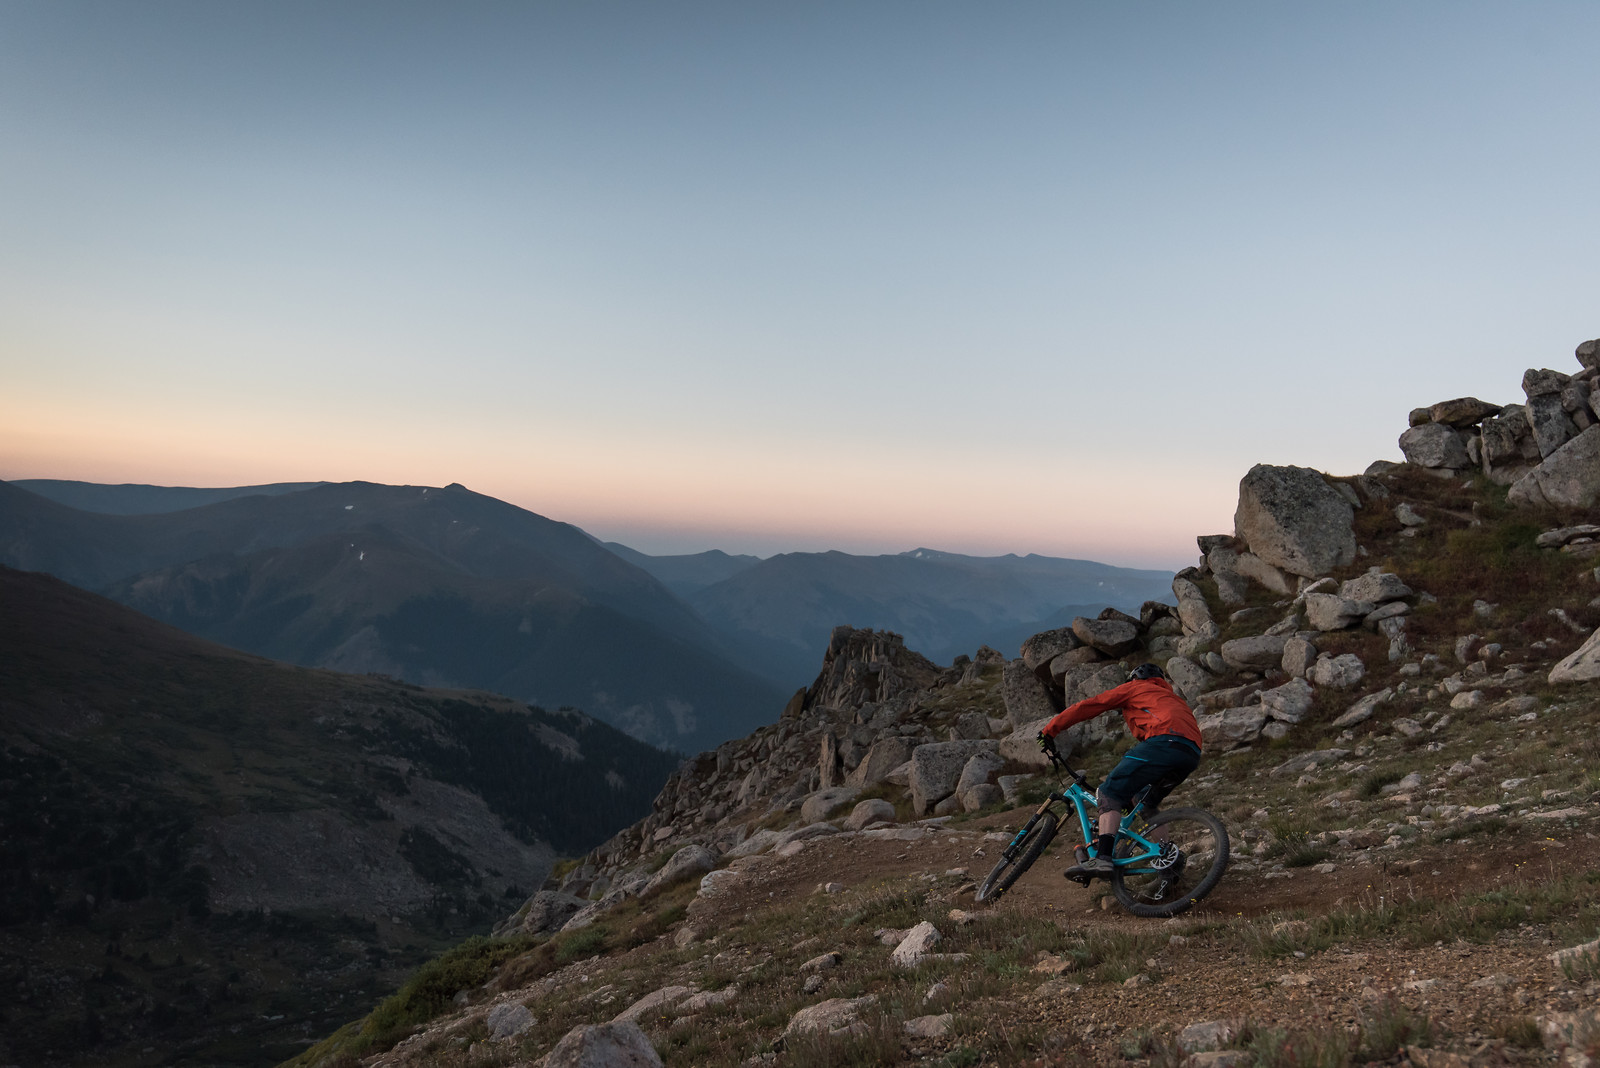 Alpine Sunrise Selfie - russellpj - Mountain Biking Pictures - Vital MTB